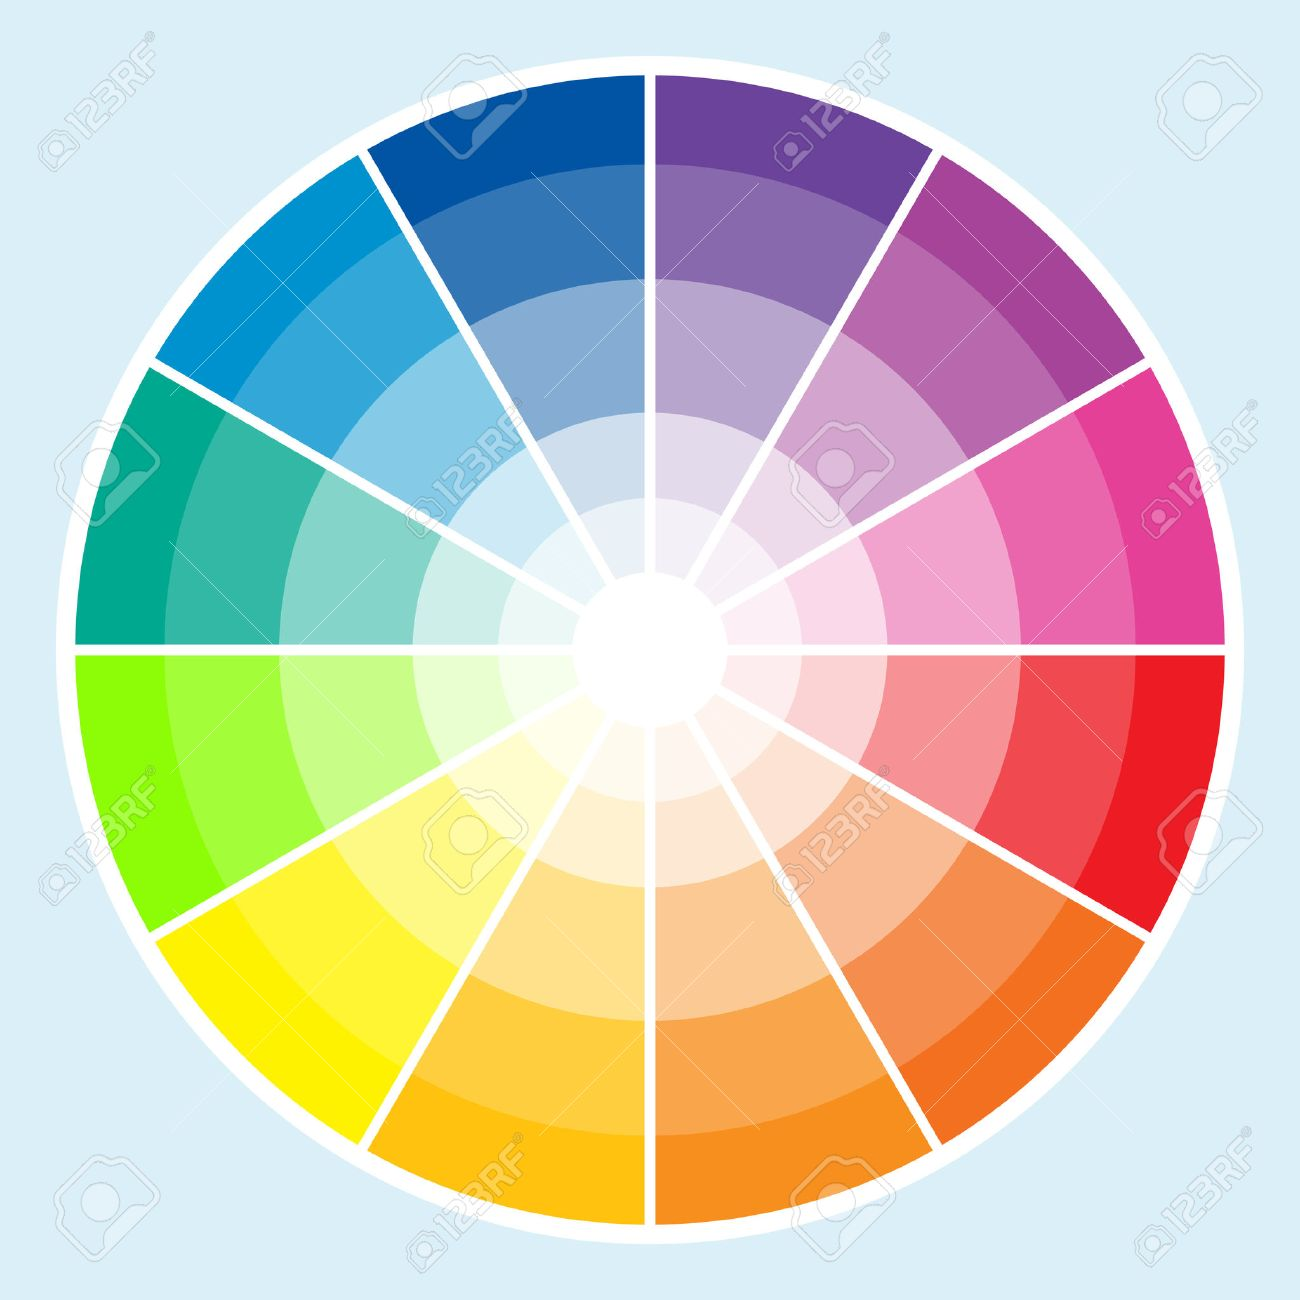 Classic Color Wheel With The Colors Moving Into Lighter Shades Stock Vector